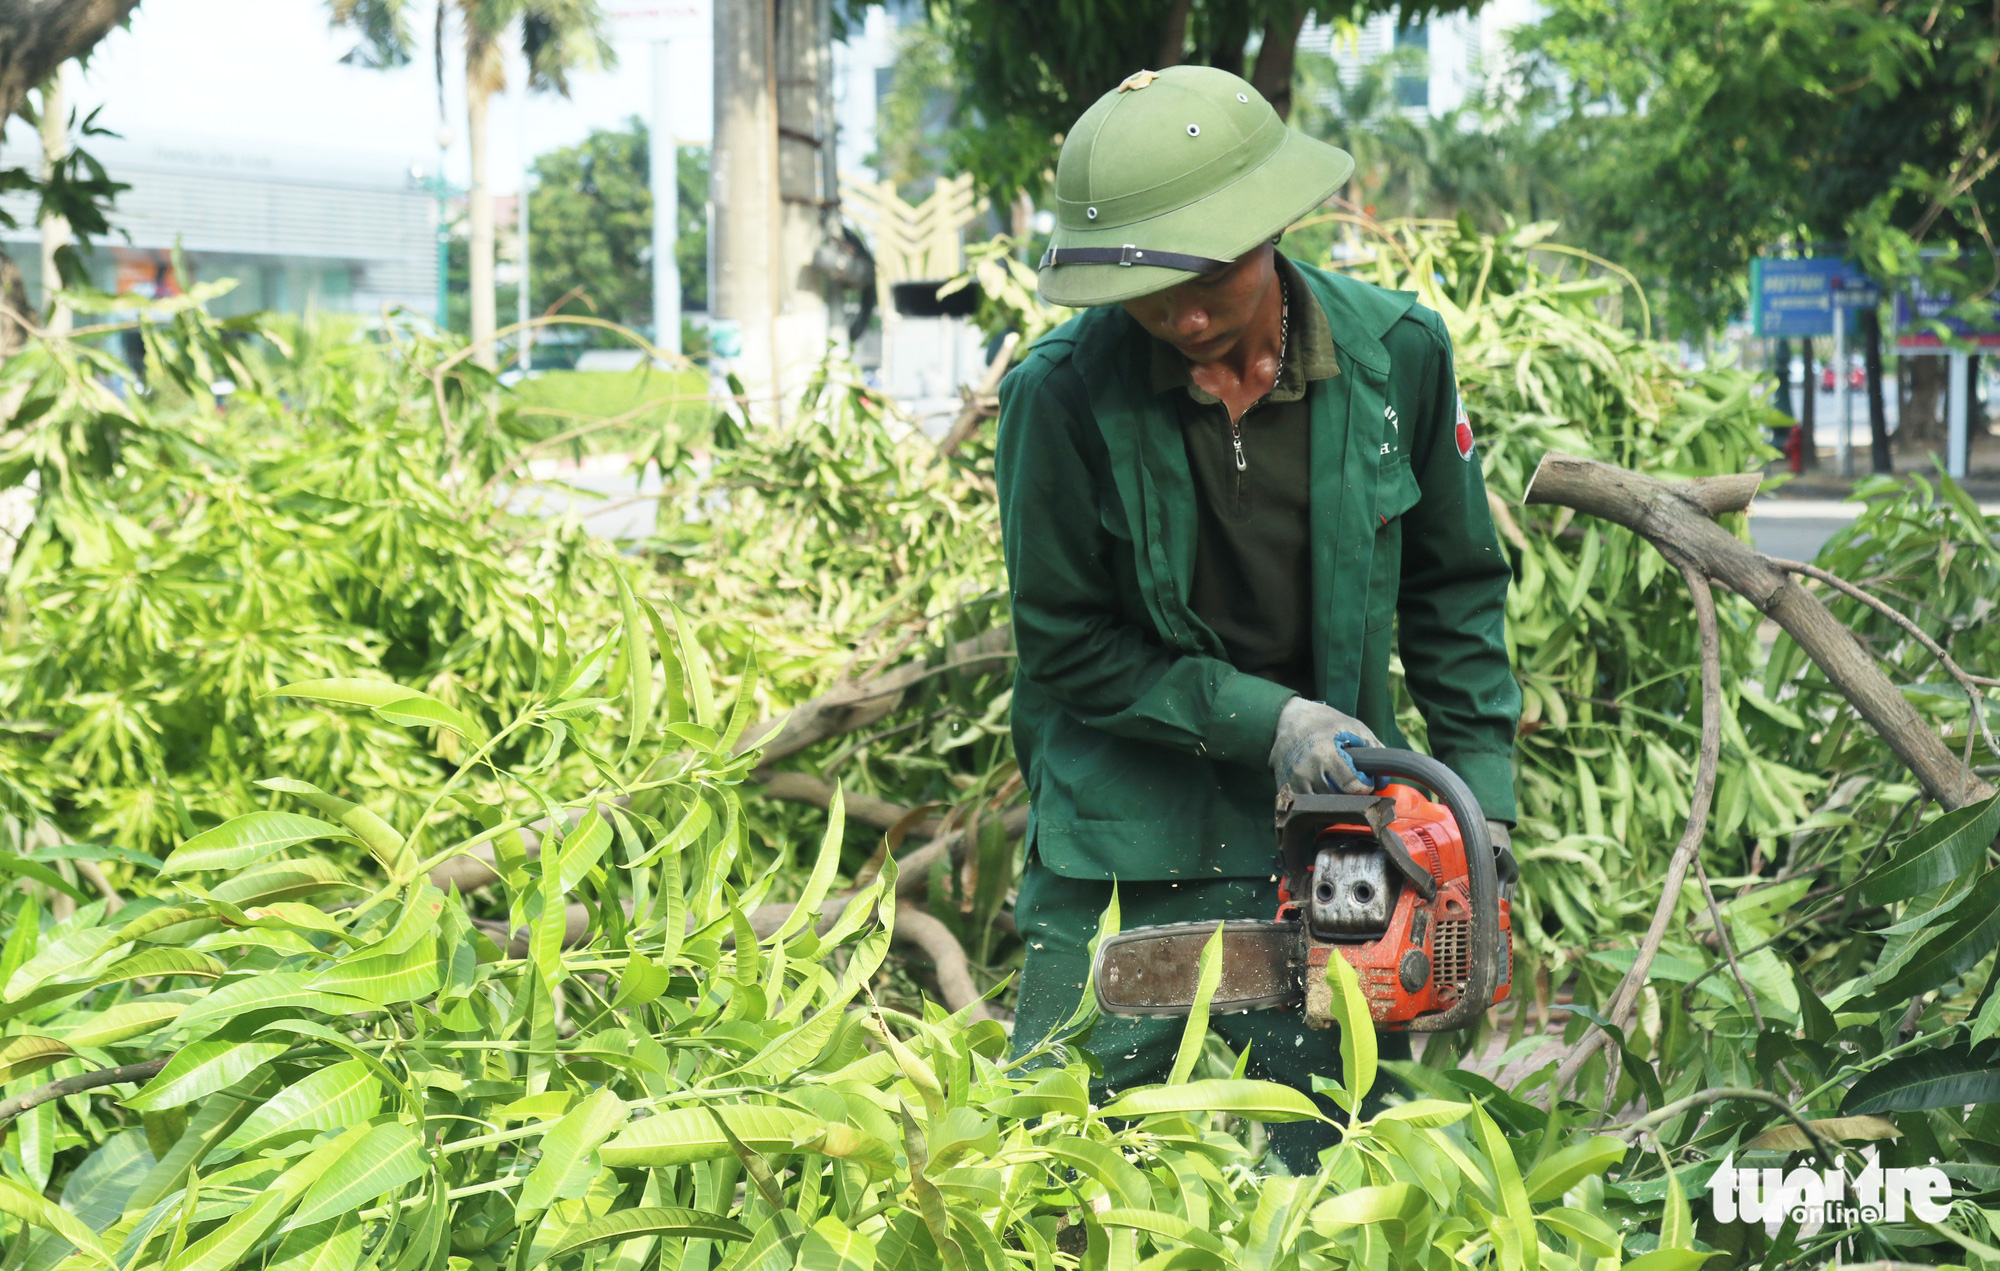 A worker uses a chainsaw to chop up big tree branches in Vinh City, Nghe An Province, Vietnam. Photo: Doan Hoa / Tuoi Tre